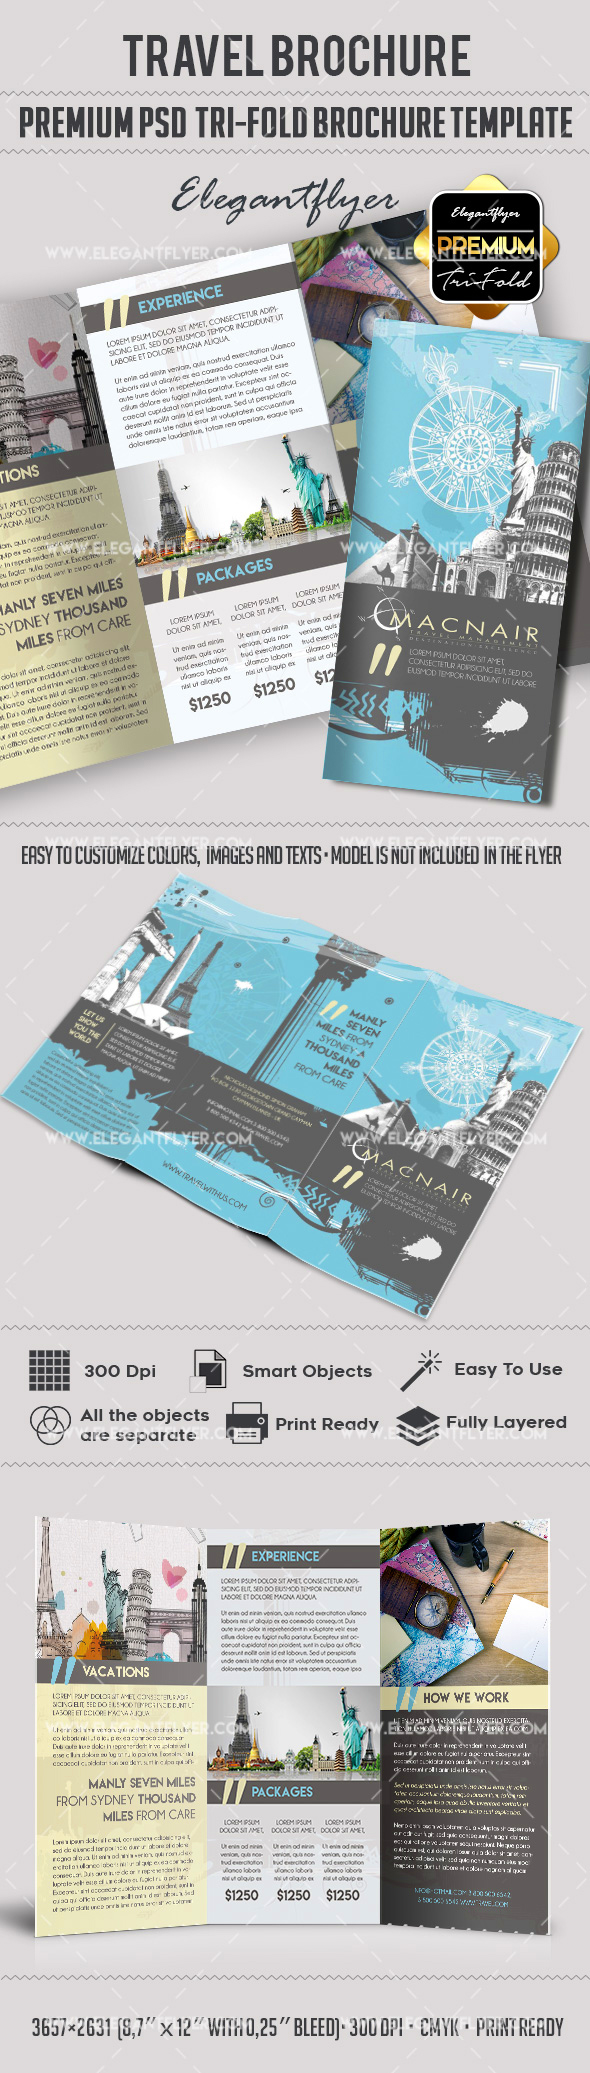 Old travel brochure template by elegantflyer for 3 fold brochure template psd